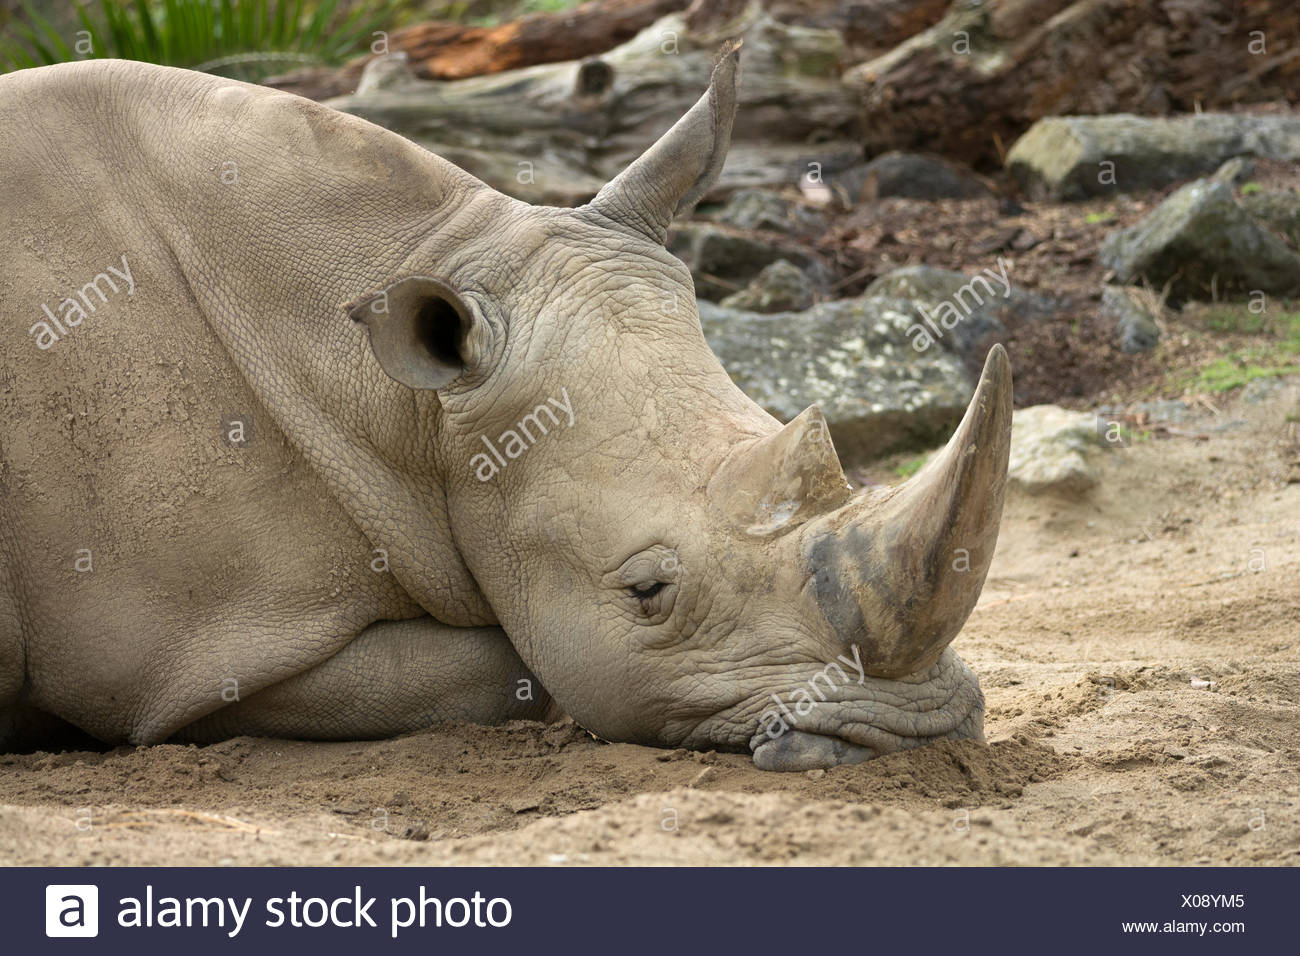 White Rhinoceros (Ceratotherium simum), asleep, Auckland Zoo, Auckland, North Island, New Zealand - Stock Image